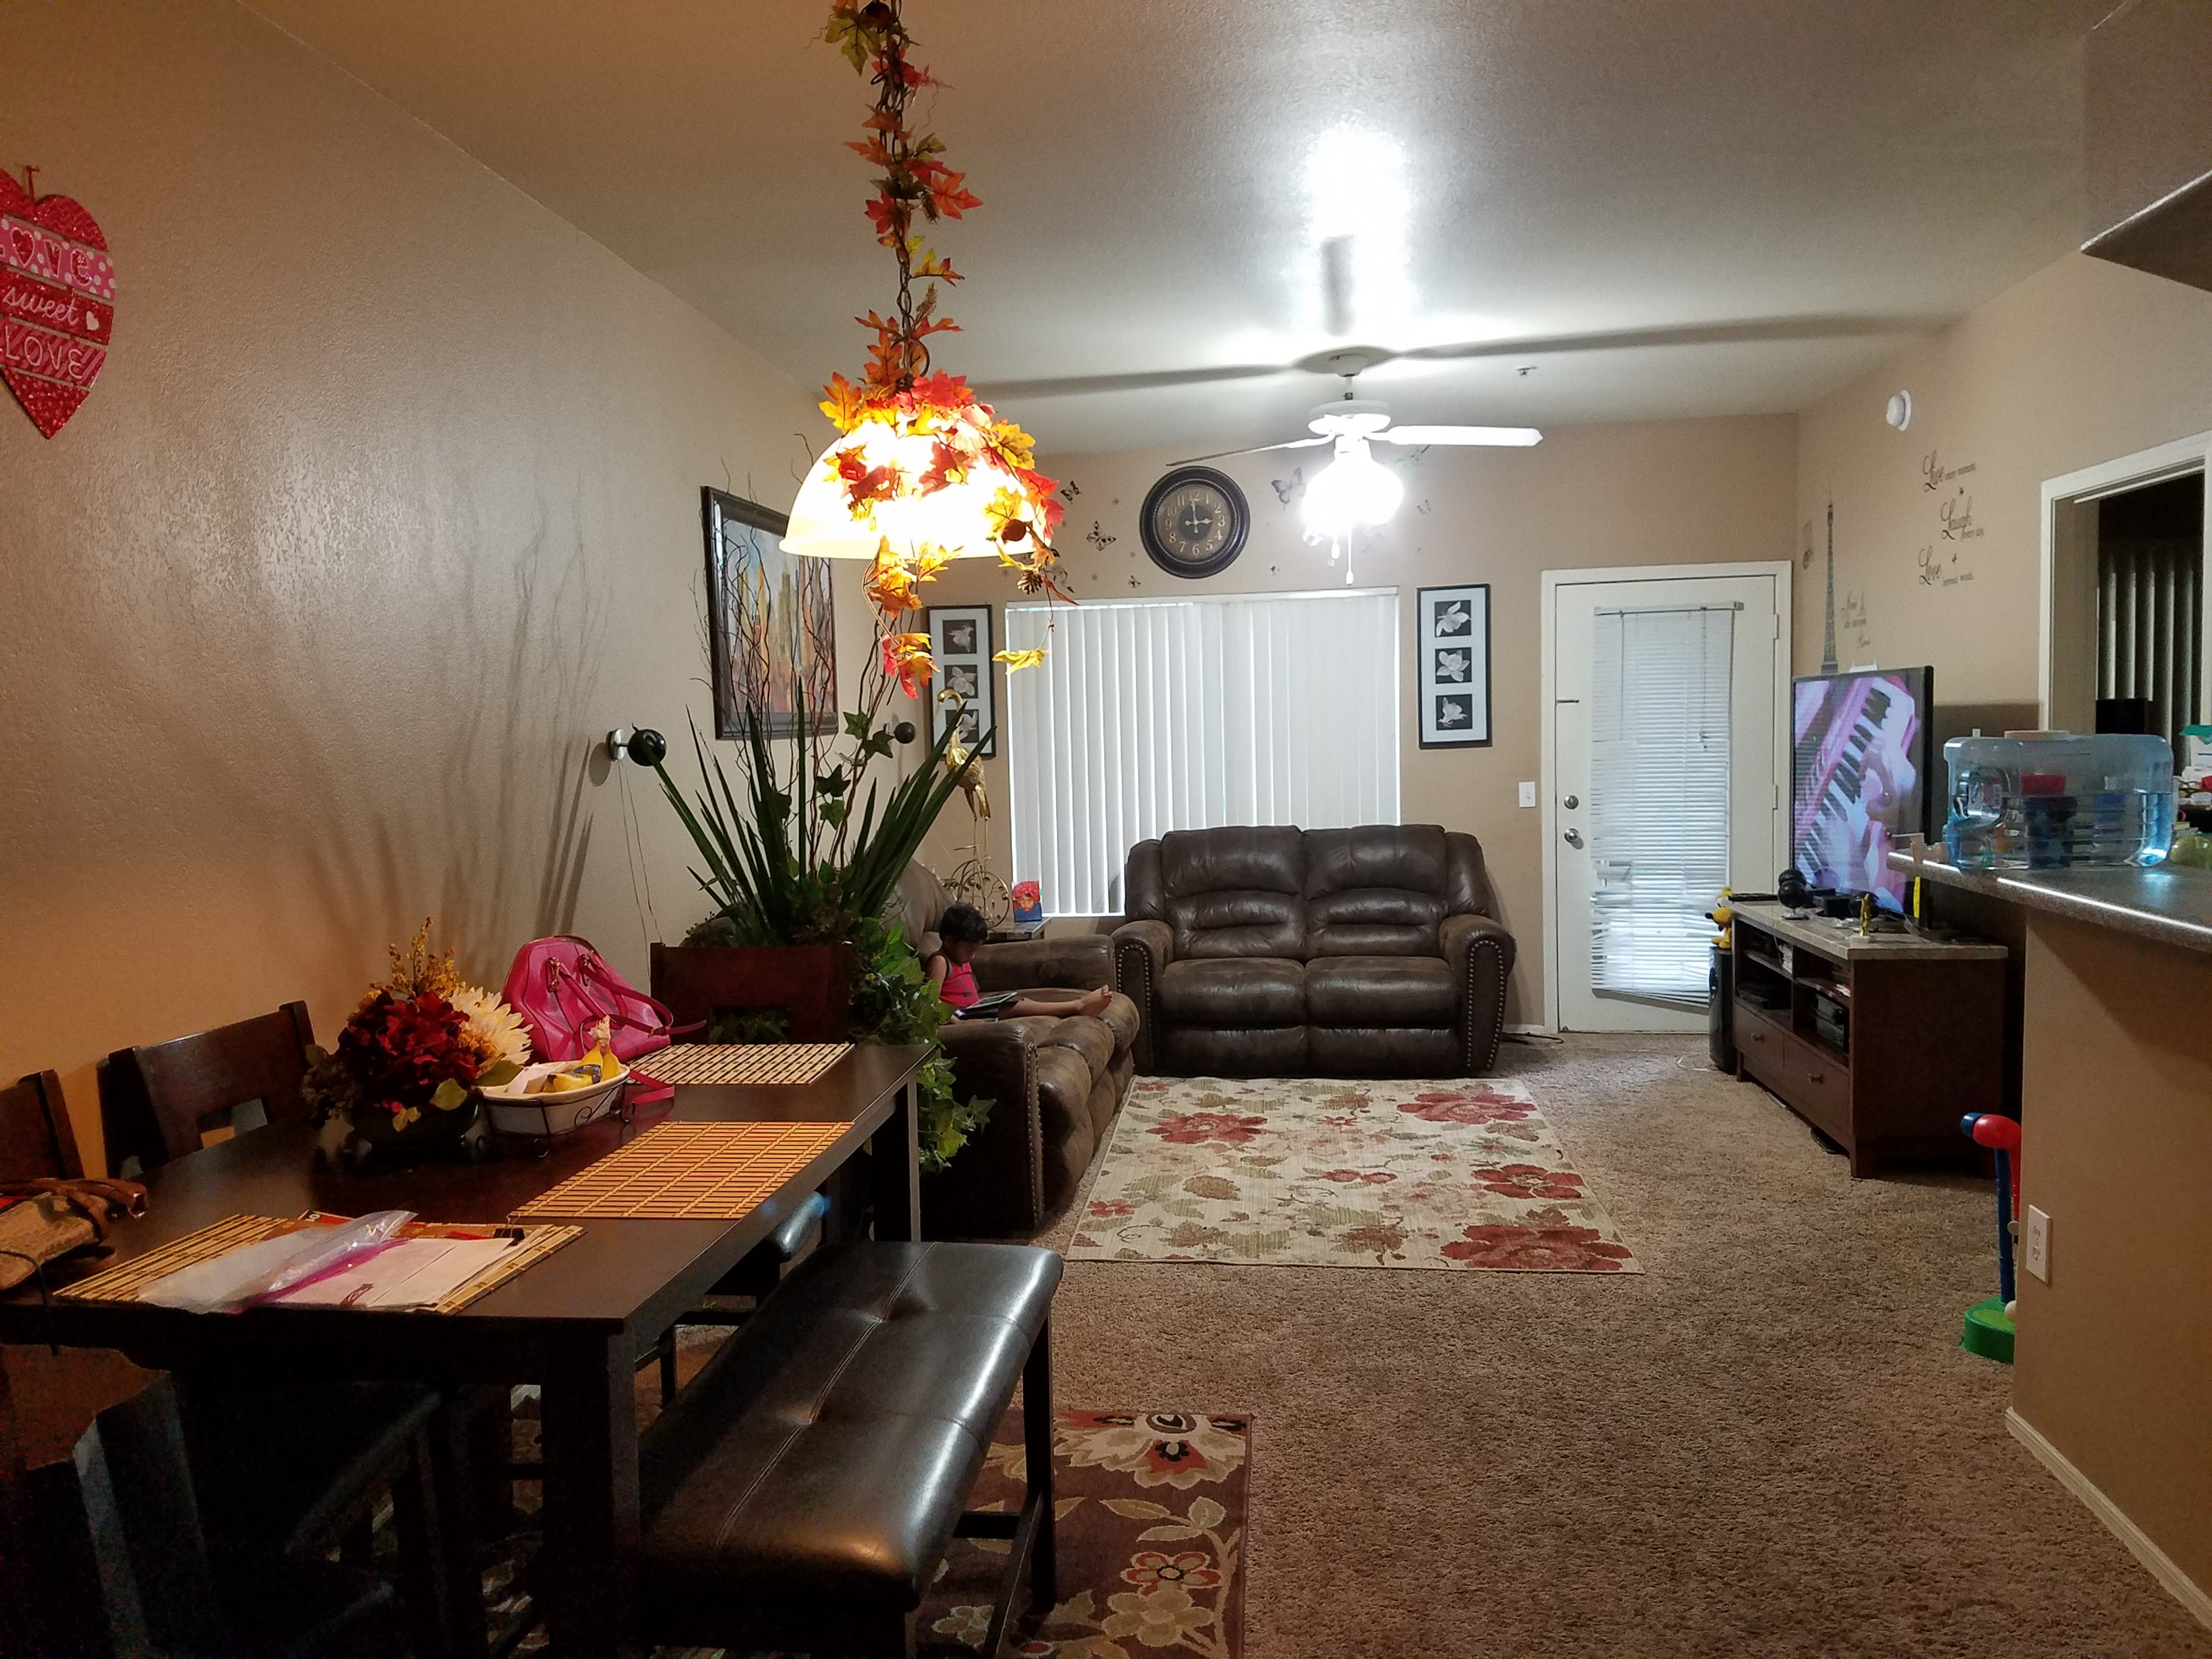 House For Rent In Phoenix Metro Area Apartments Flats Commercial Space Individual House